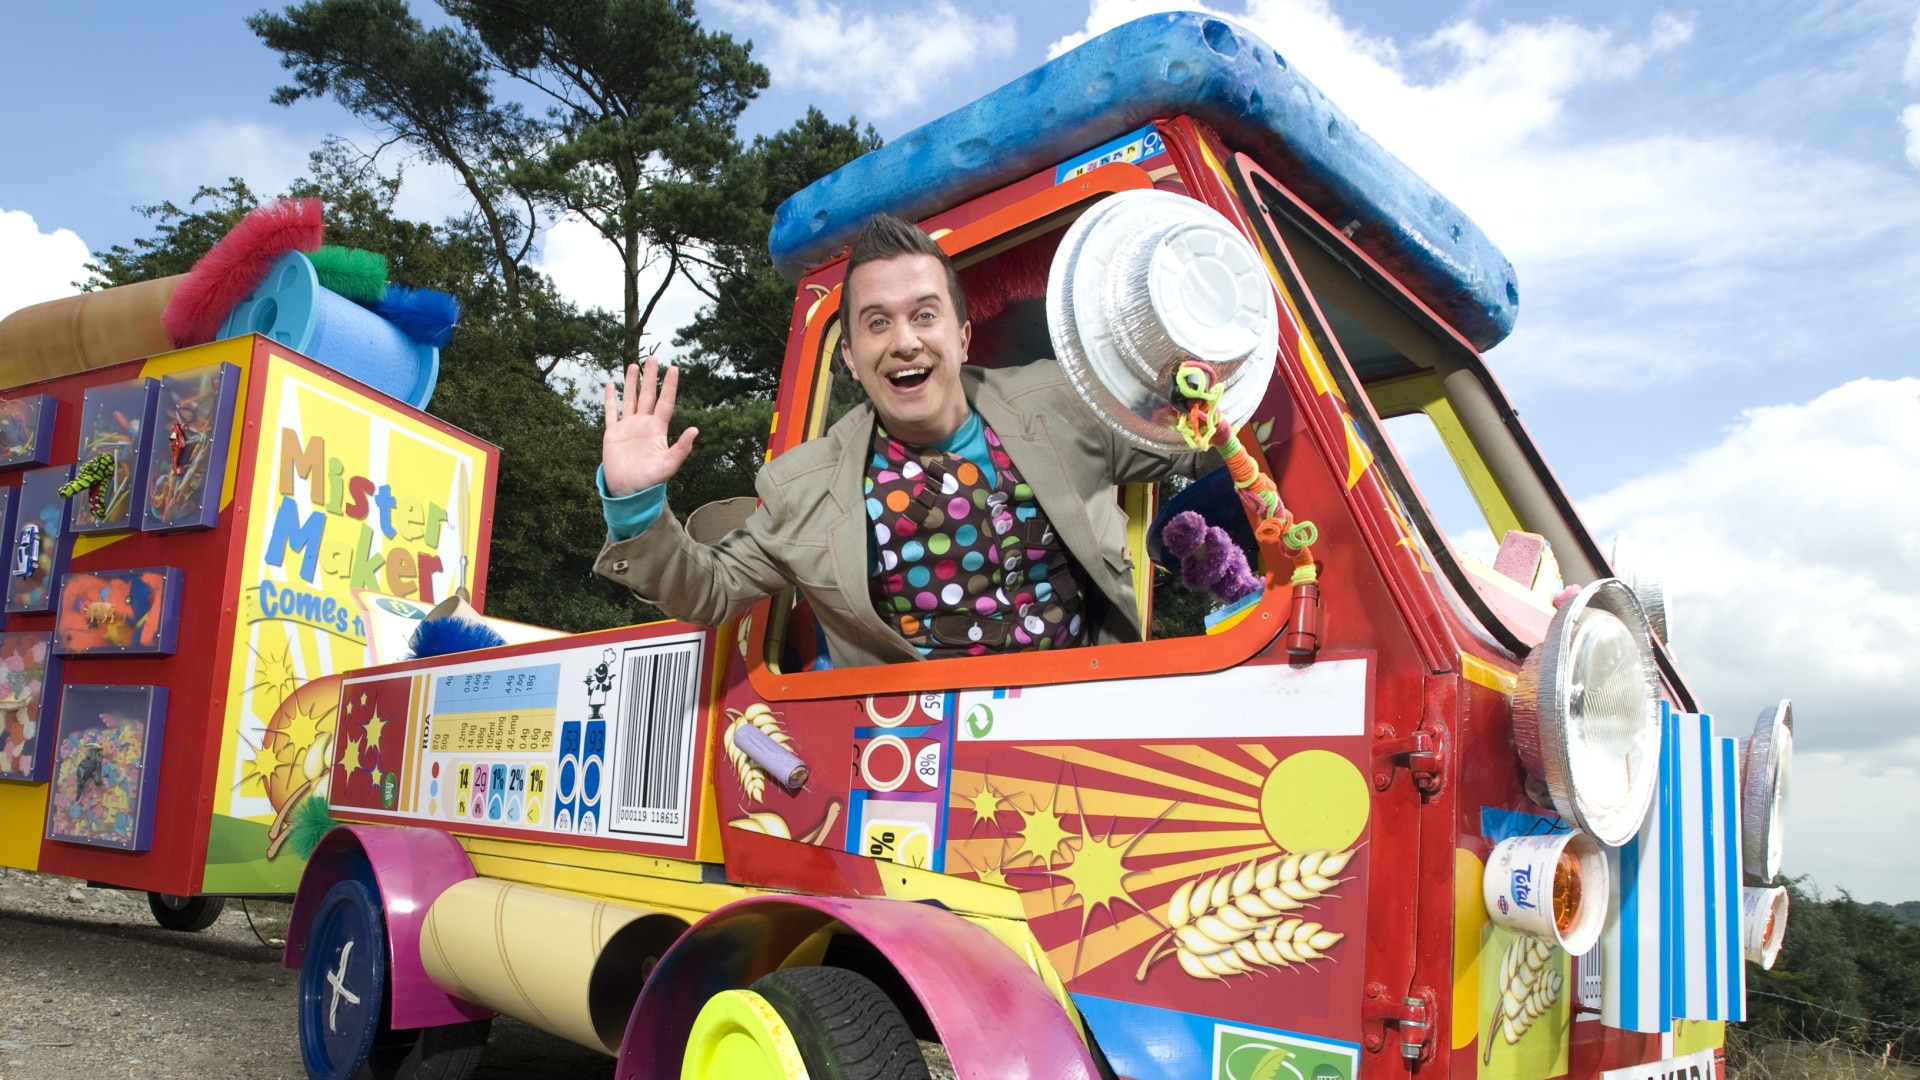 Mister Maker Comes To Town 14